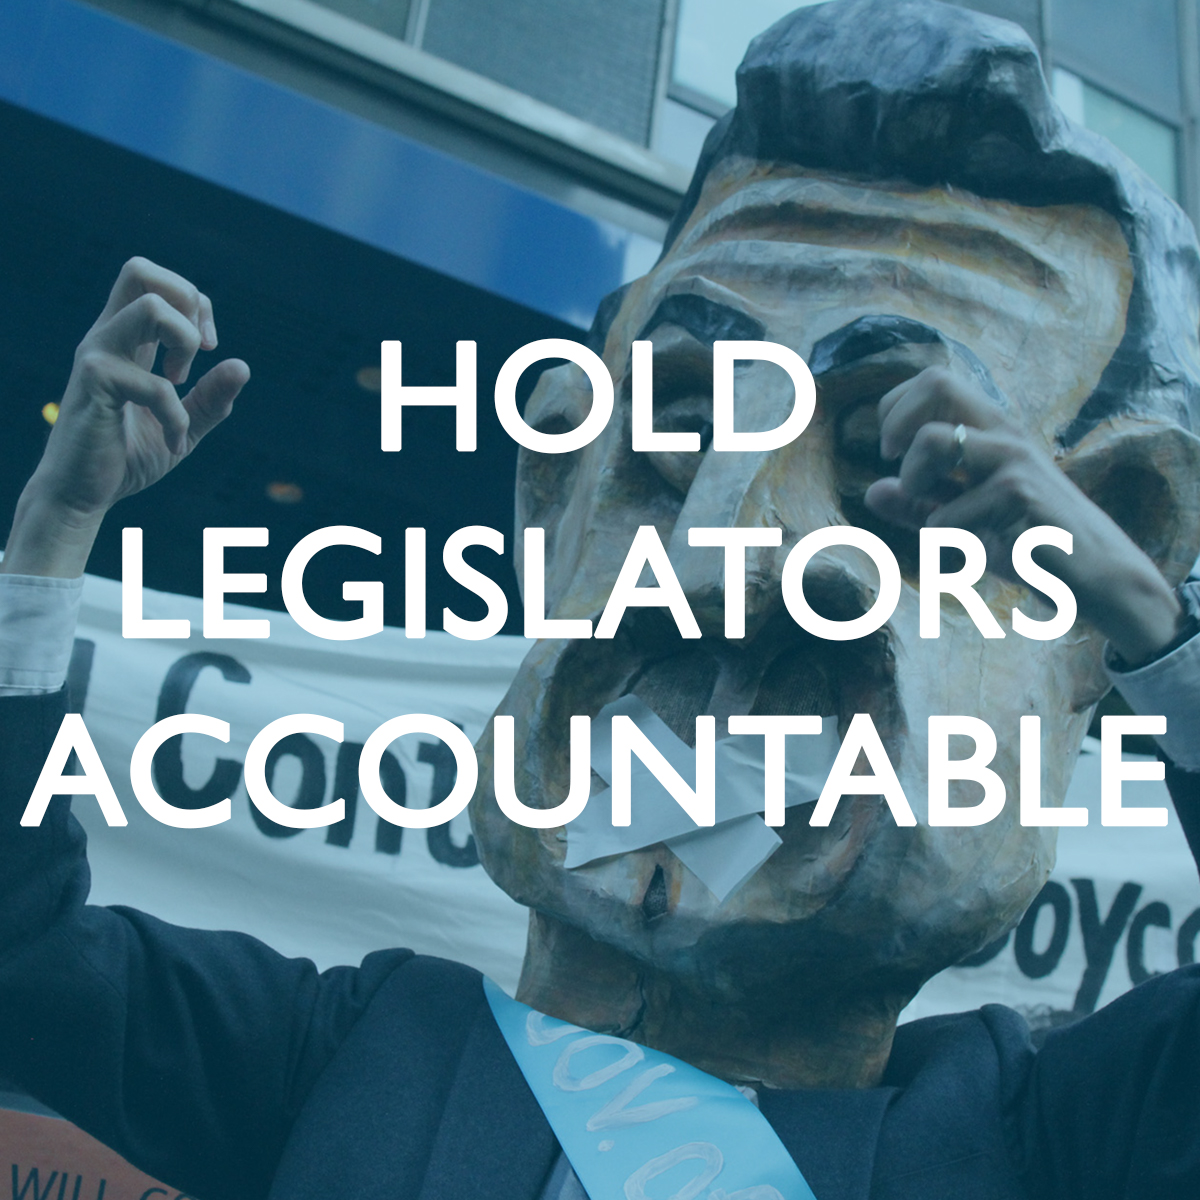 hold_legislators_accountable.jpg